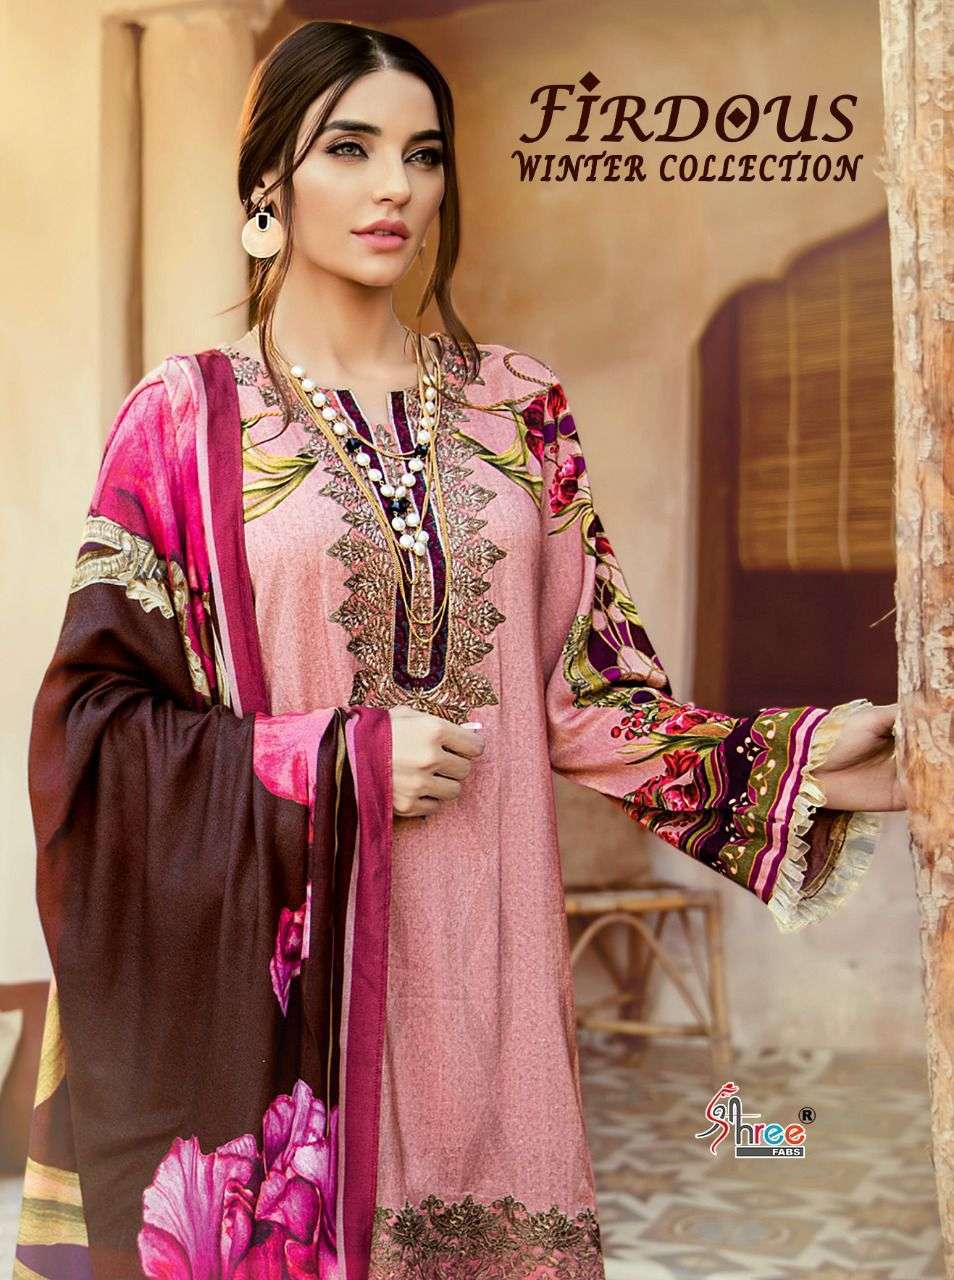 SHREE FAB FIRDOUS WINTER COLLECTION DESIGNER PASHMINA PRINT WITH EMBROIDERY WORK PAKISTANI PATTERN SUITS WHOLESALE